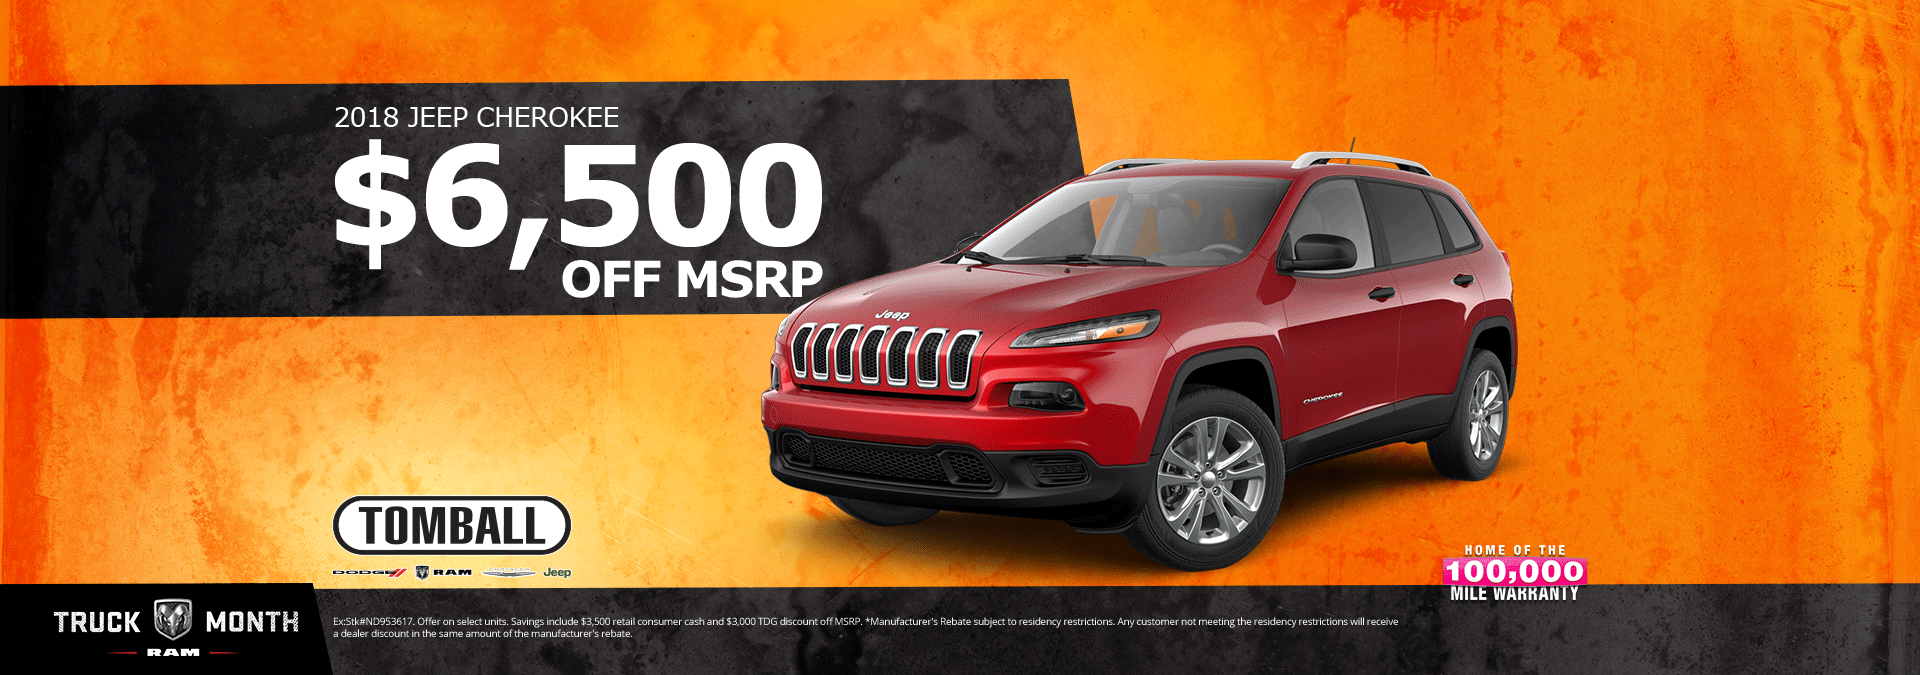 Jeep Dealership Houston >> All New Dodge, Chrysler, and Jeep Specials | Tomball Dodge